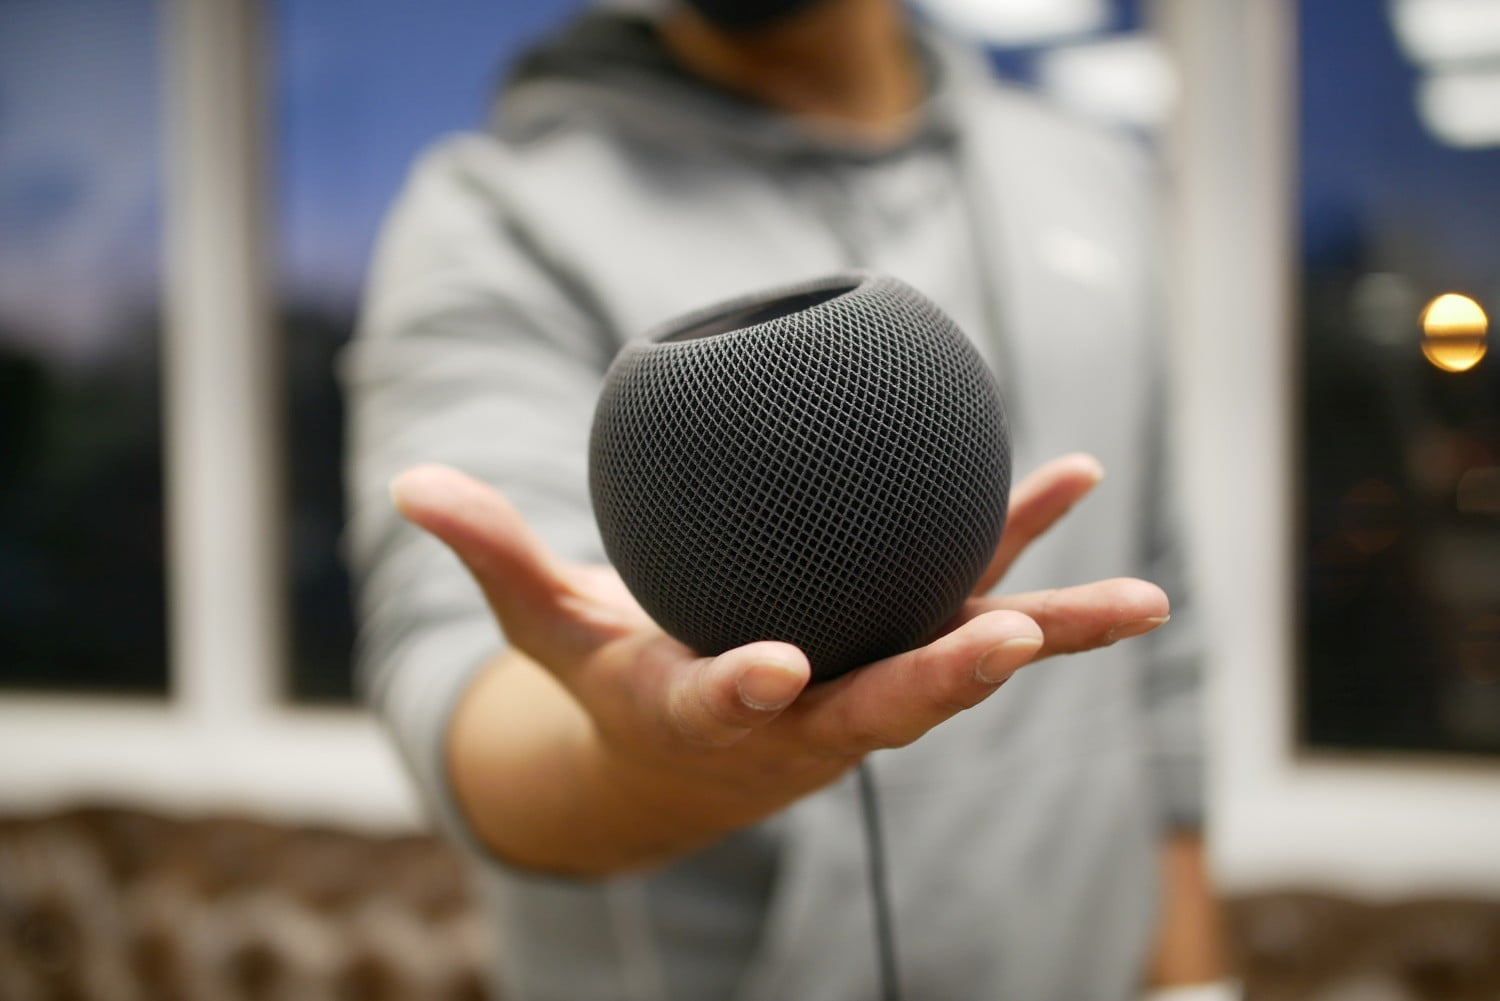 apple-homepod-mini-review-12-of-12